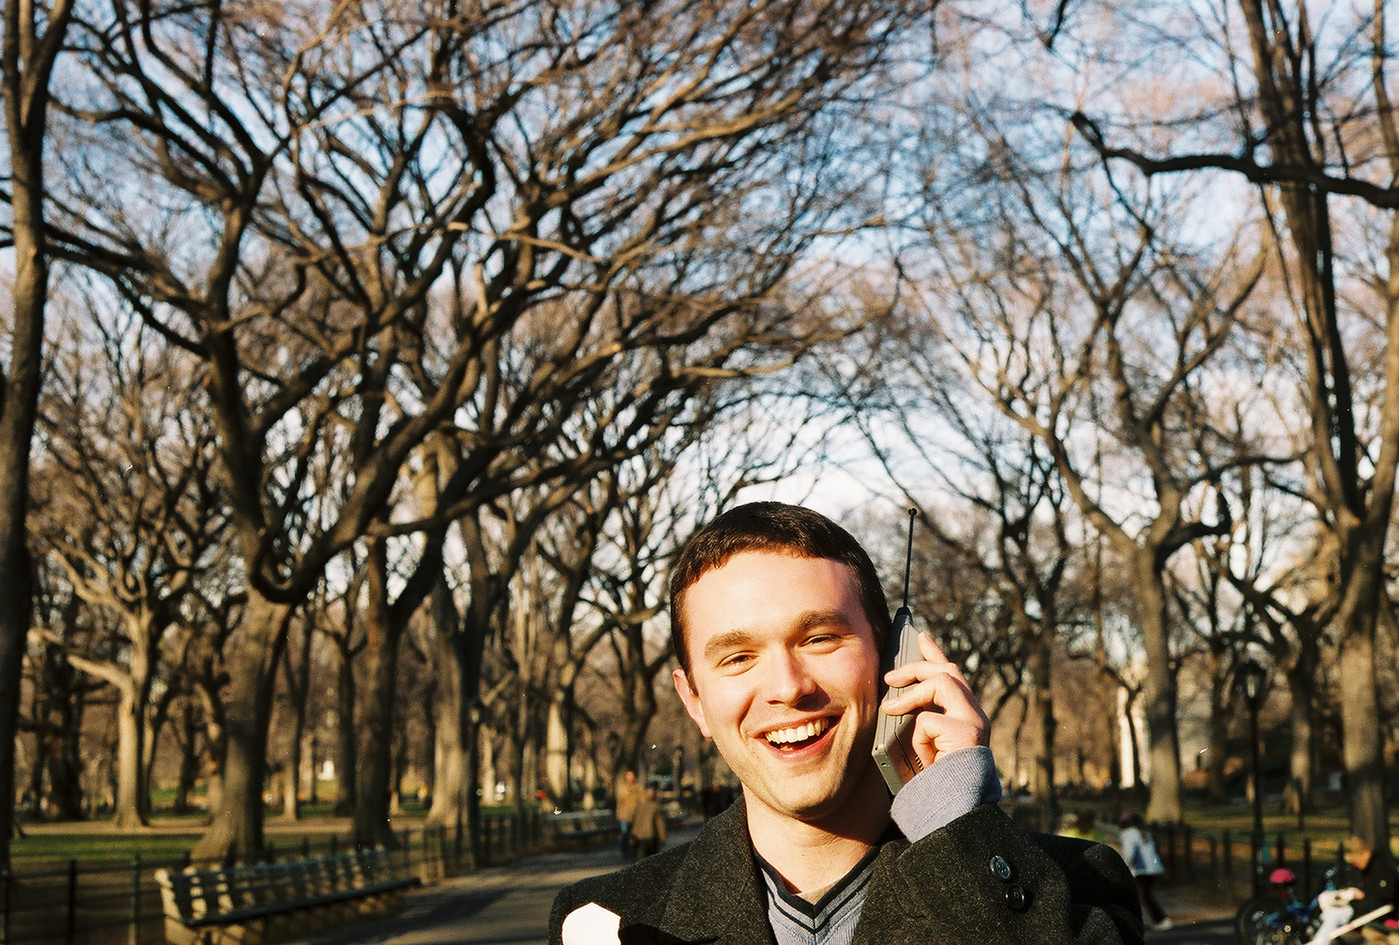 First cell phone call in Central Park, 2002